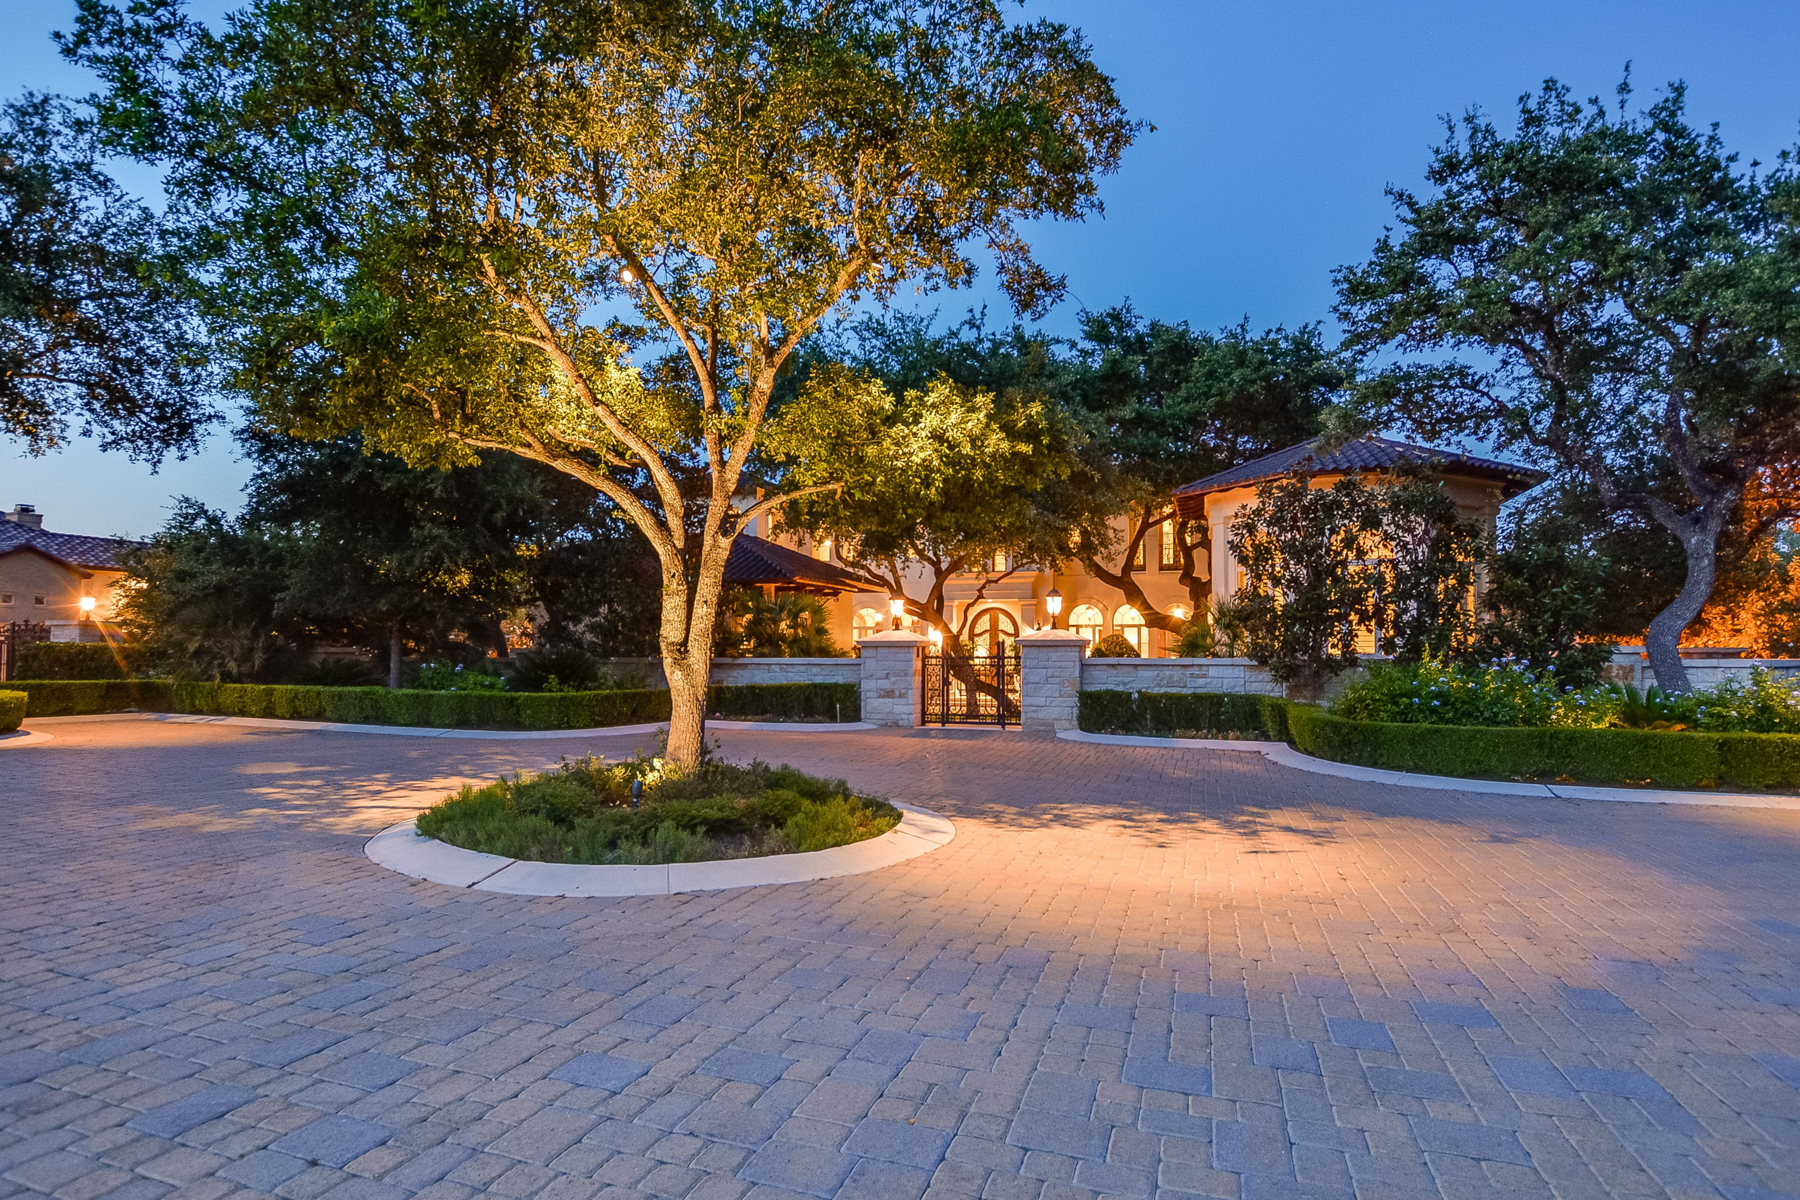 Maison unifamiliale pour l Vente à Breathtaking Masterpiece in Huntington 238 Winding Ln San Antonio, Texas, 78231 États-Unis